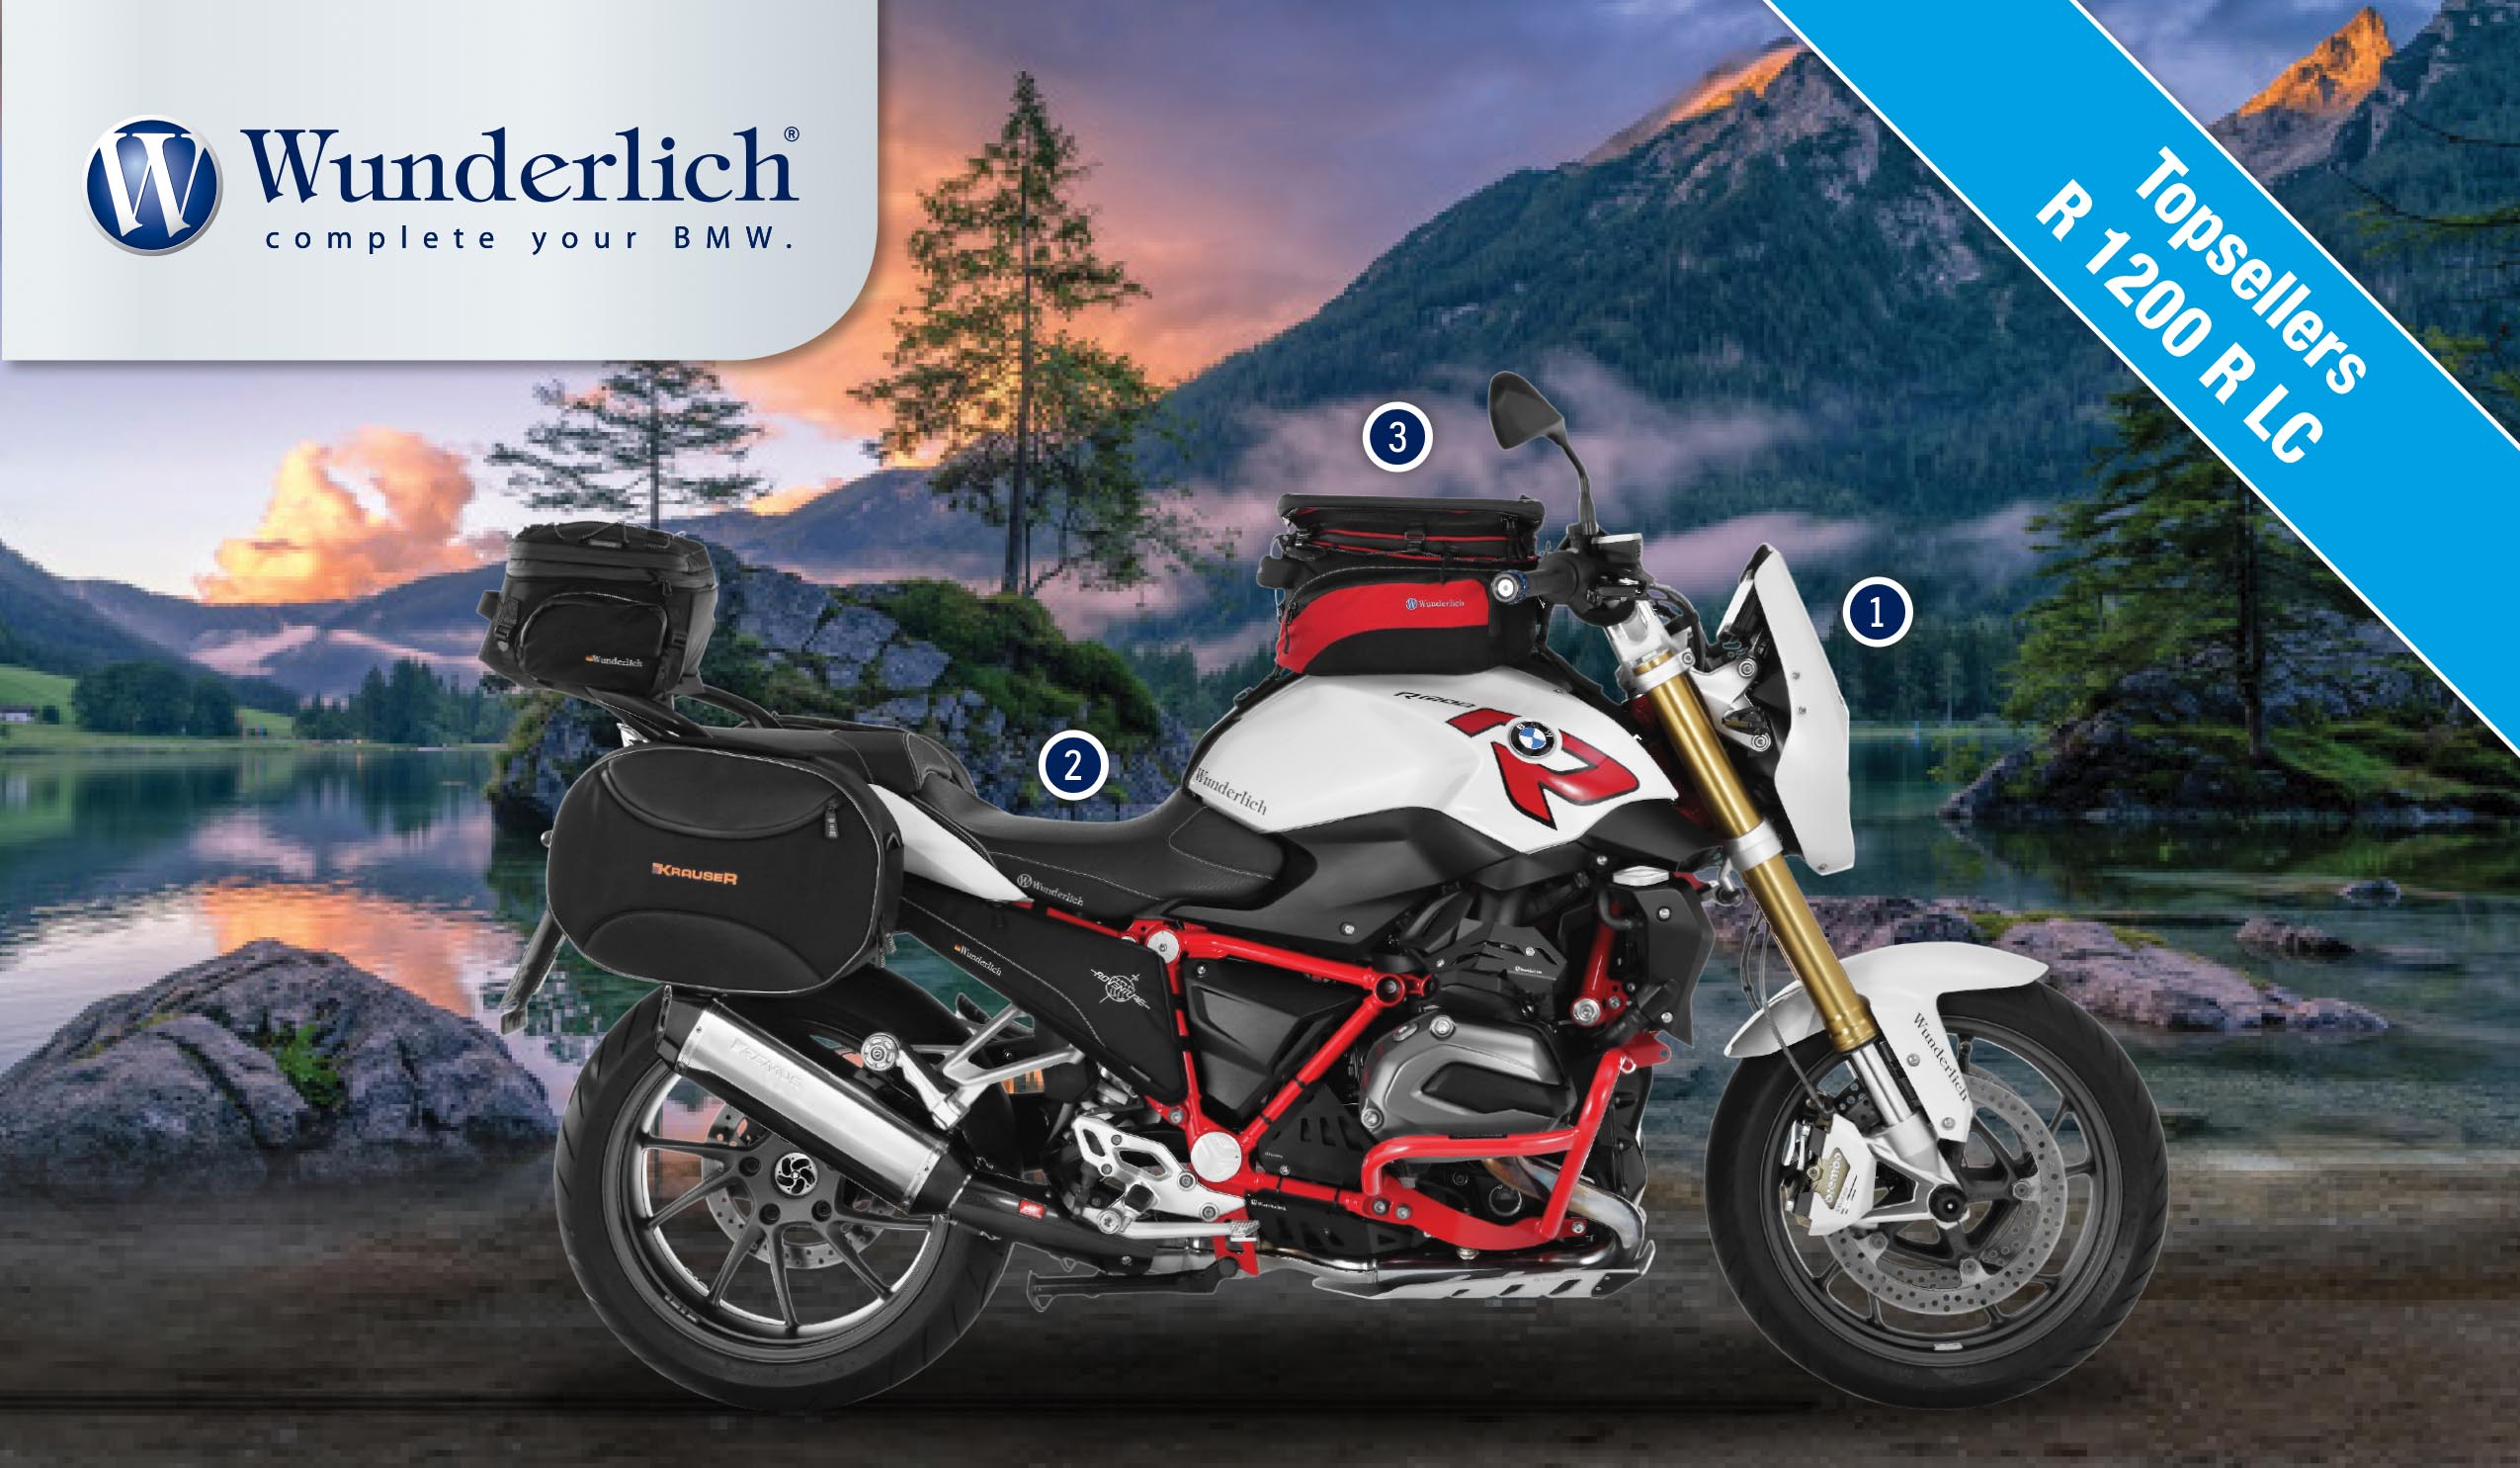 R1200 R-LC (2015 - on) Topsellers Buyer's Guide R1200 R-LC (2015 - on)